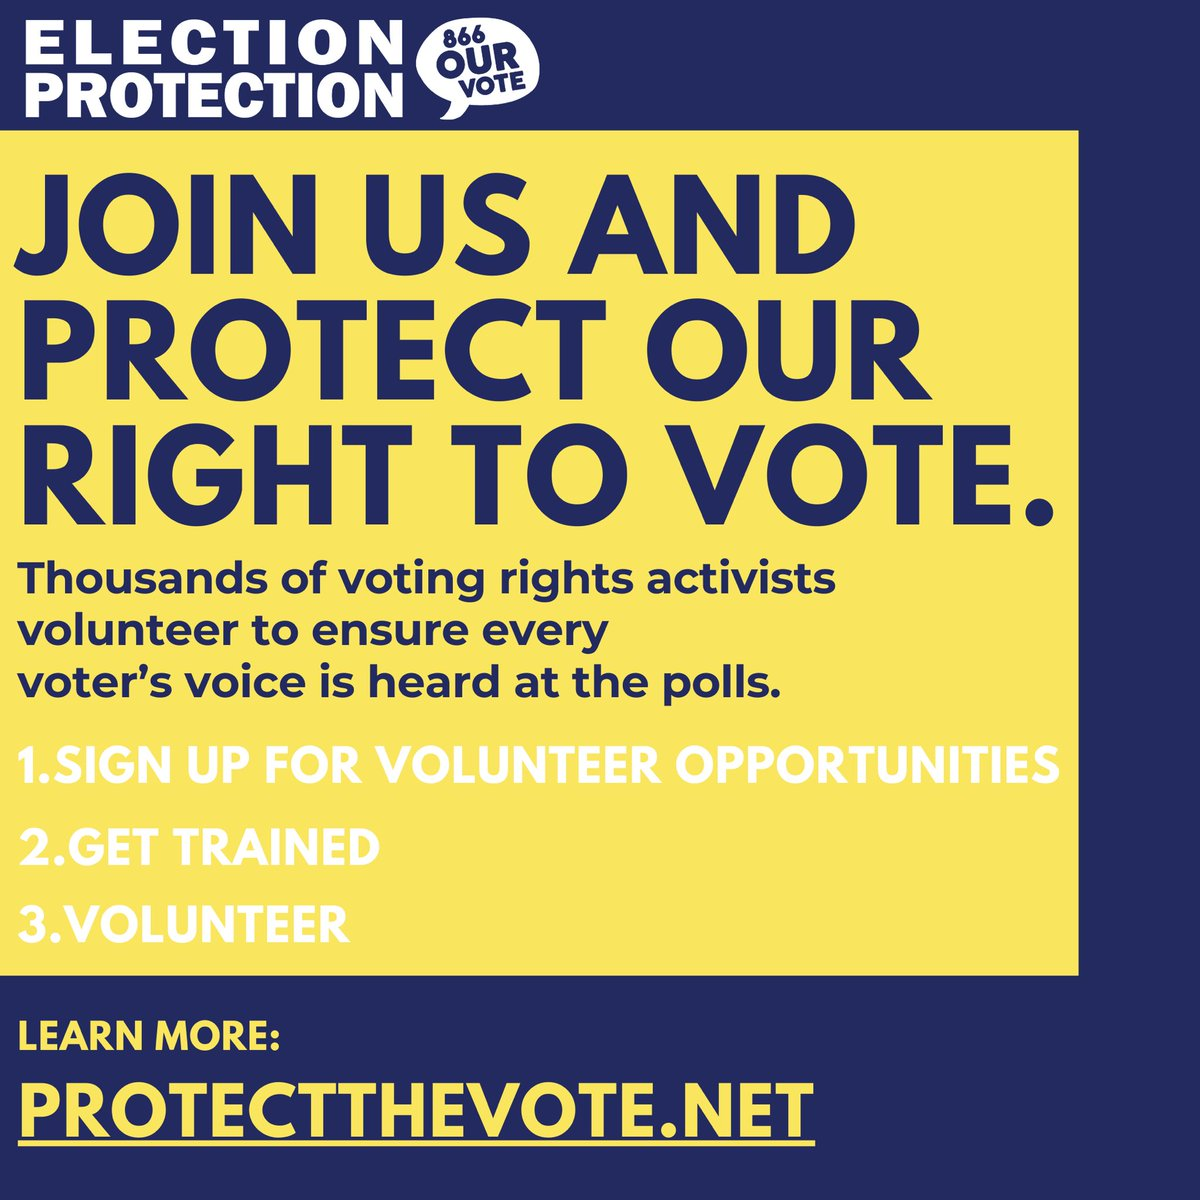 We also need 1000s of non-lawyer volunteers to help protect this election! #ProtectTheVote can find the best way for you to get involved:helping voters from home, assisting voters safely in person, or tracking disinformation online. Sign up today! 🙋🗳️✅ protectthevote.net/?source=gaga